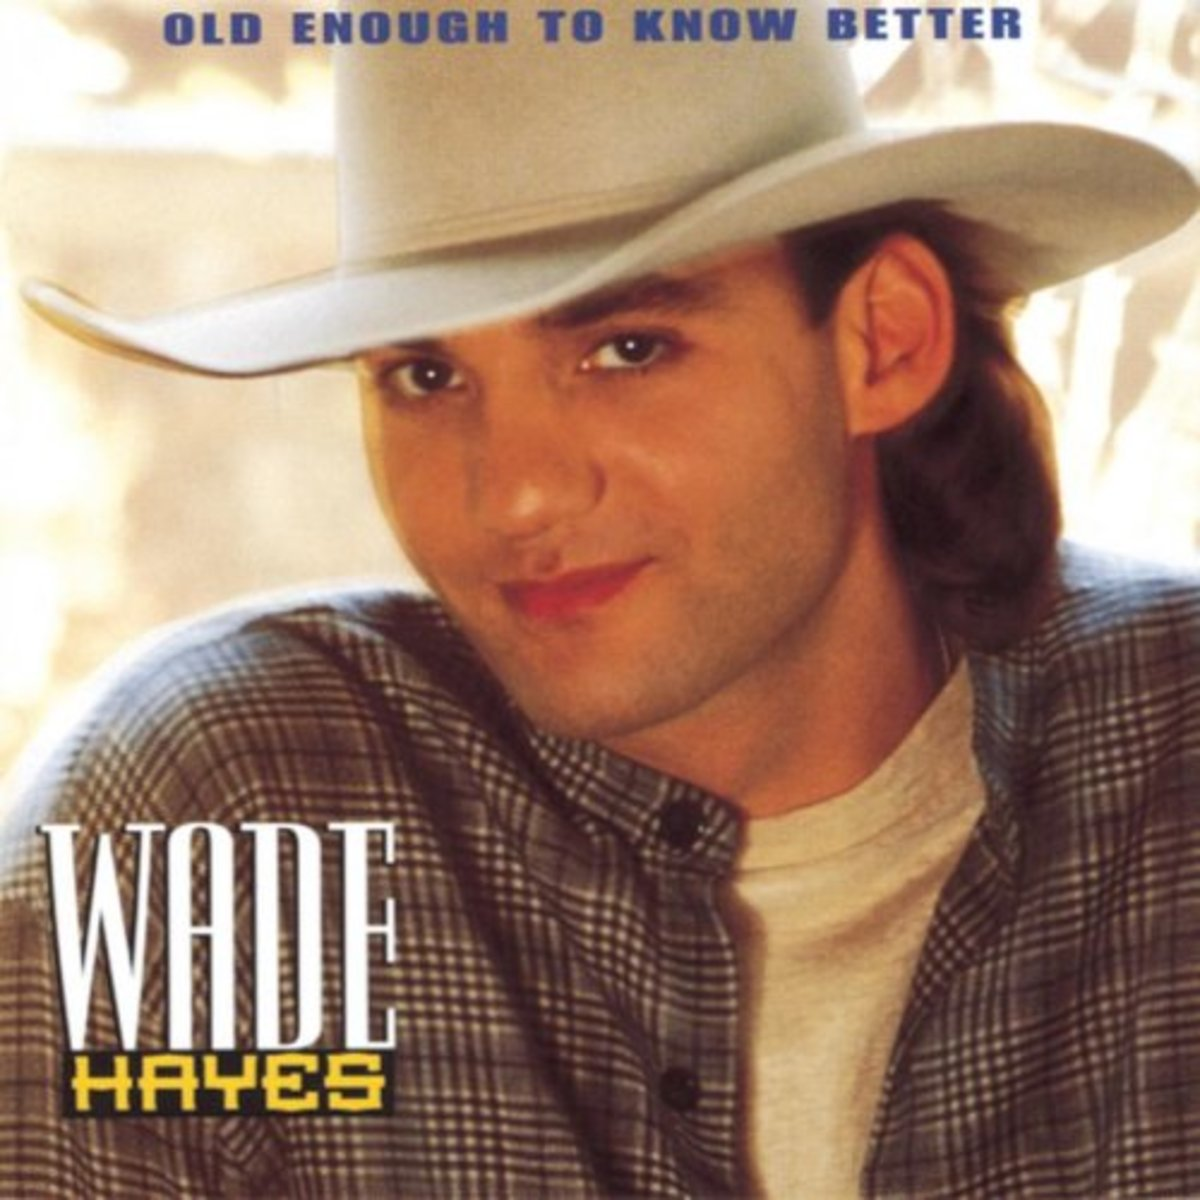 Wade Hayes Country Artist From 1990s Now Battling Cancer